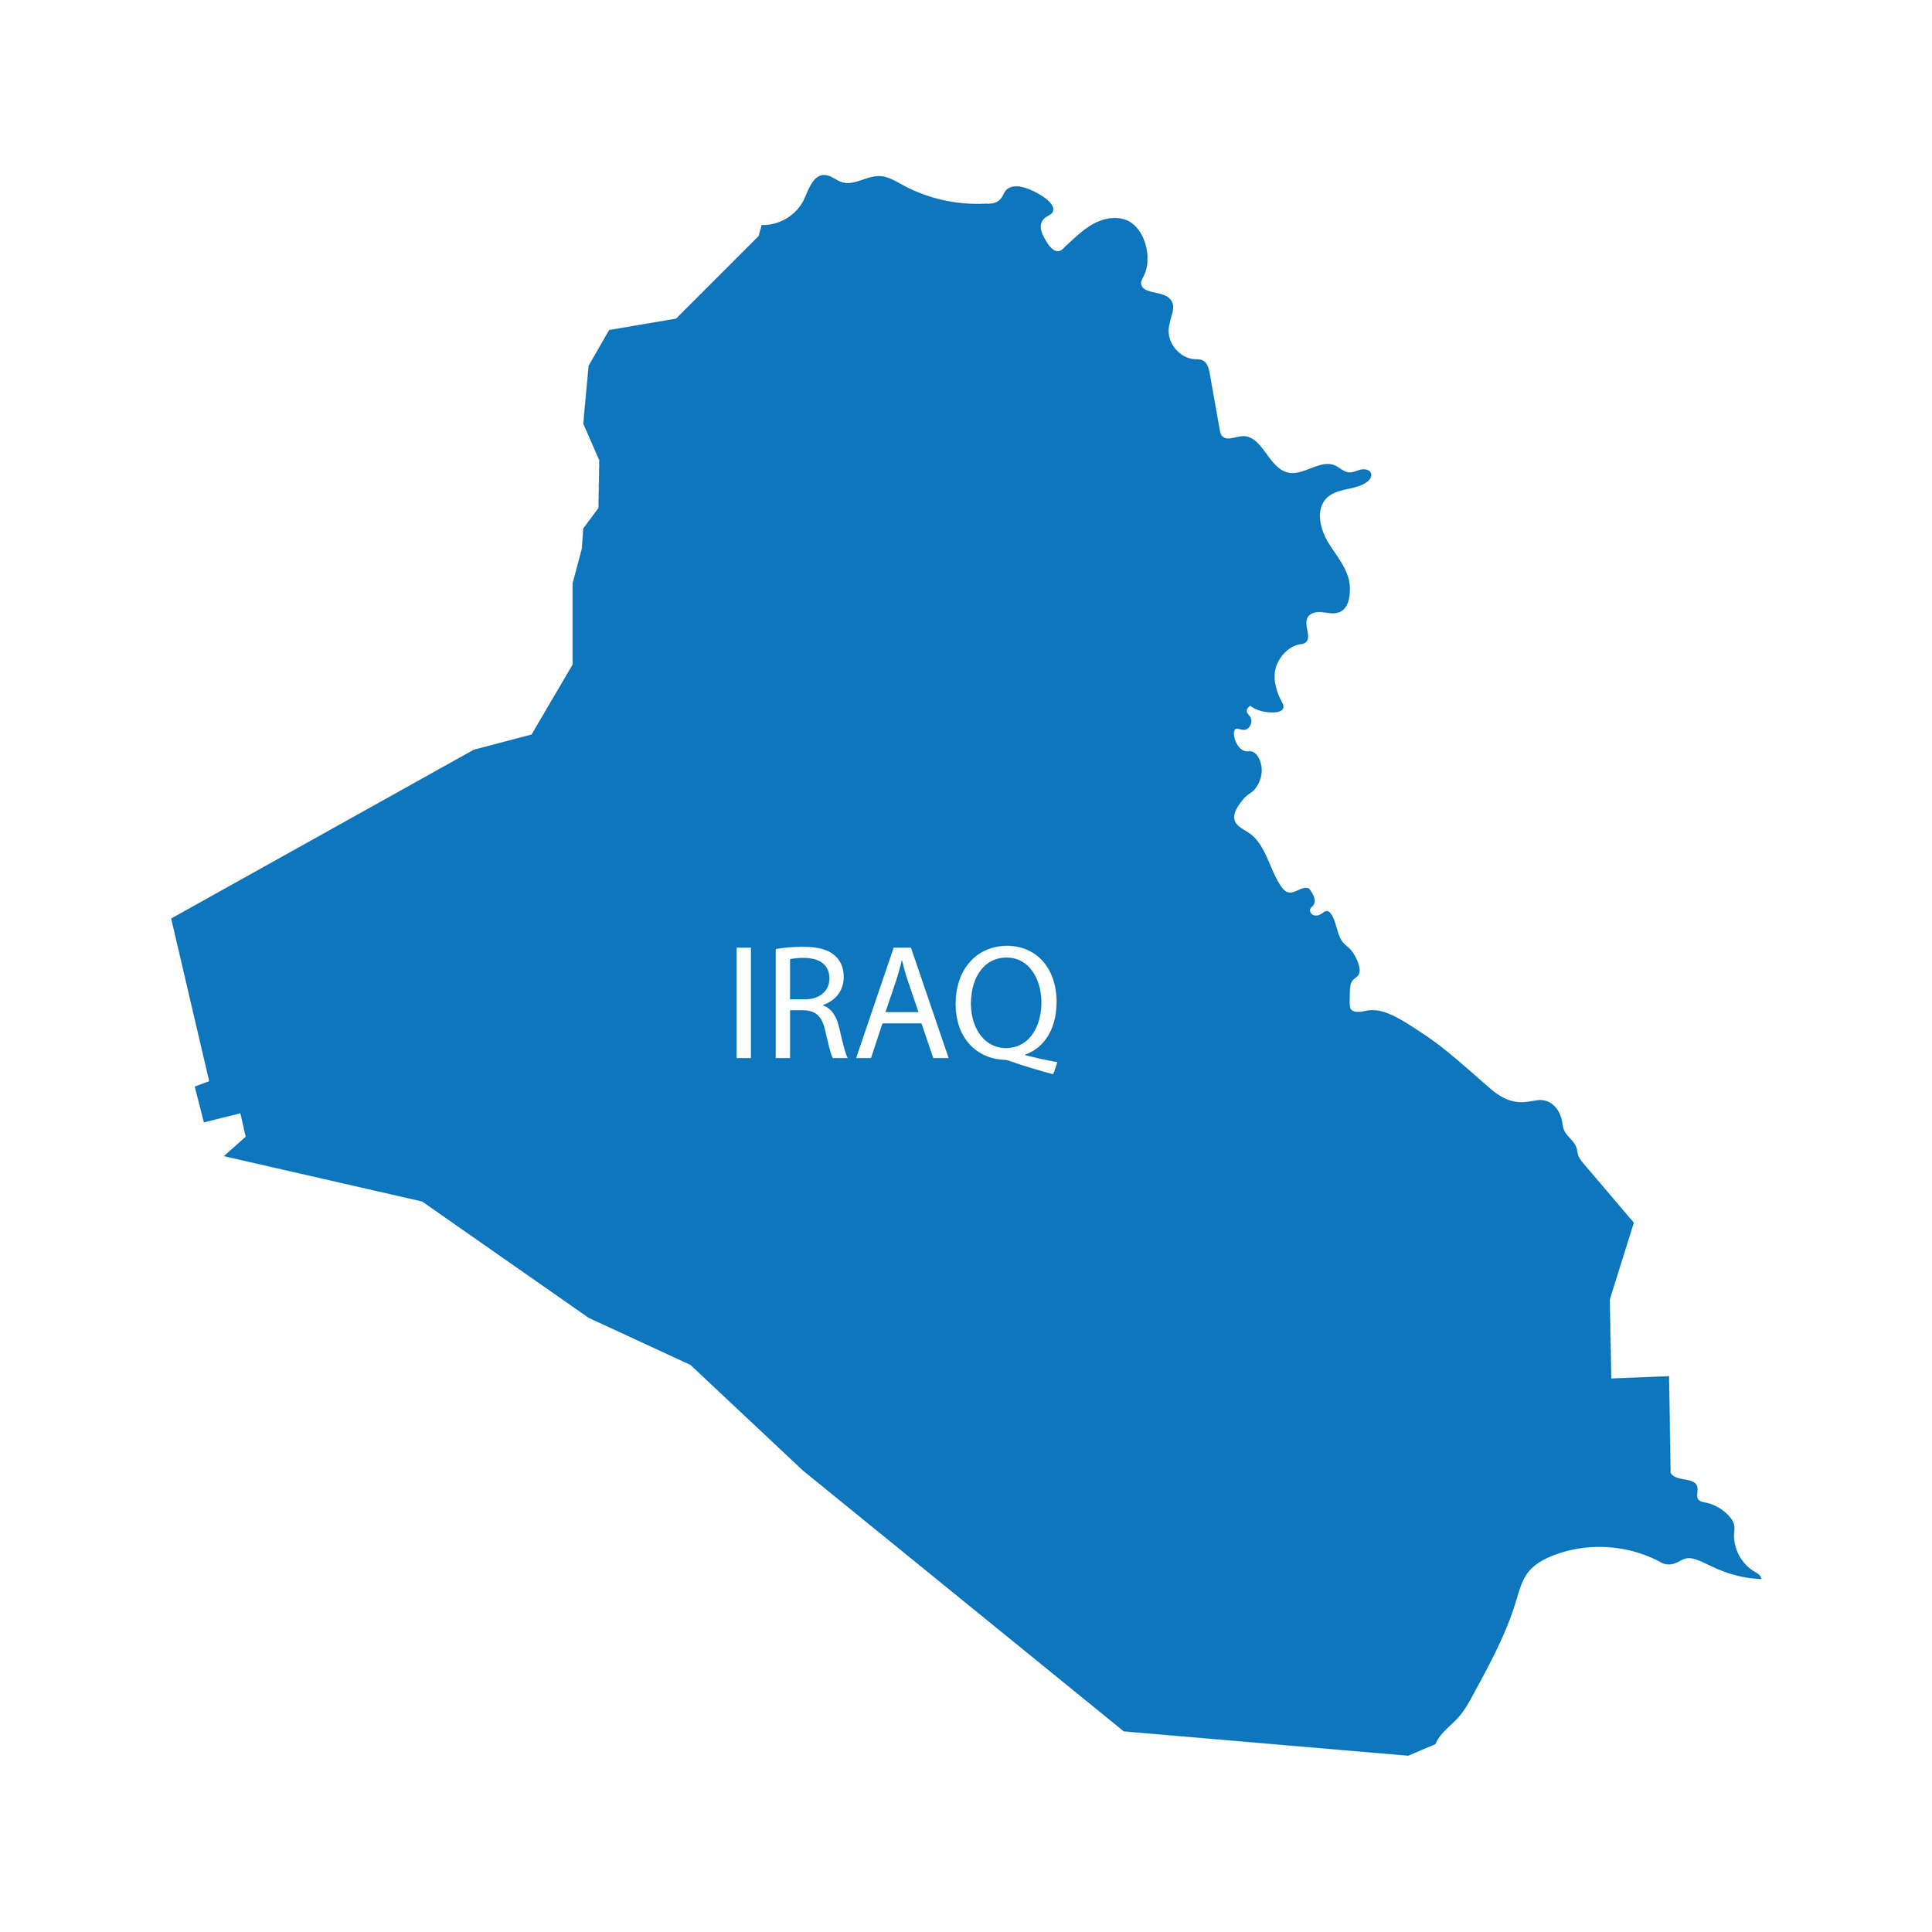 stock-vector-blue-map-of-iraq-271943048.jpg